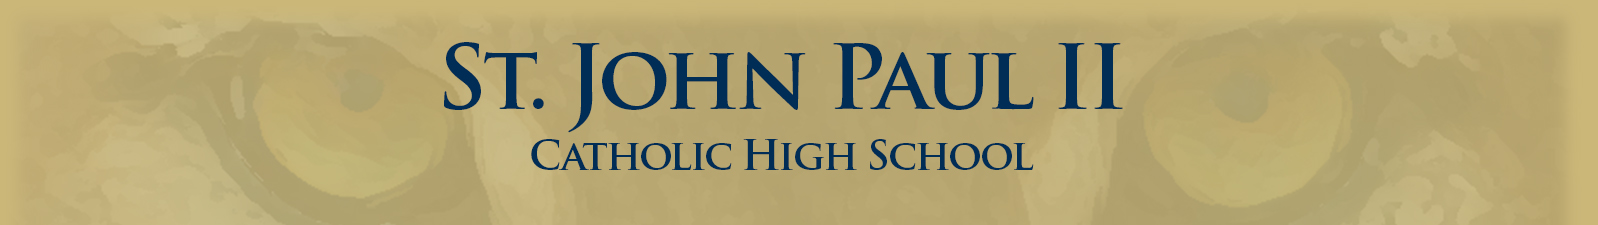 St. John Paul II Catholic High School